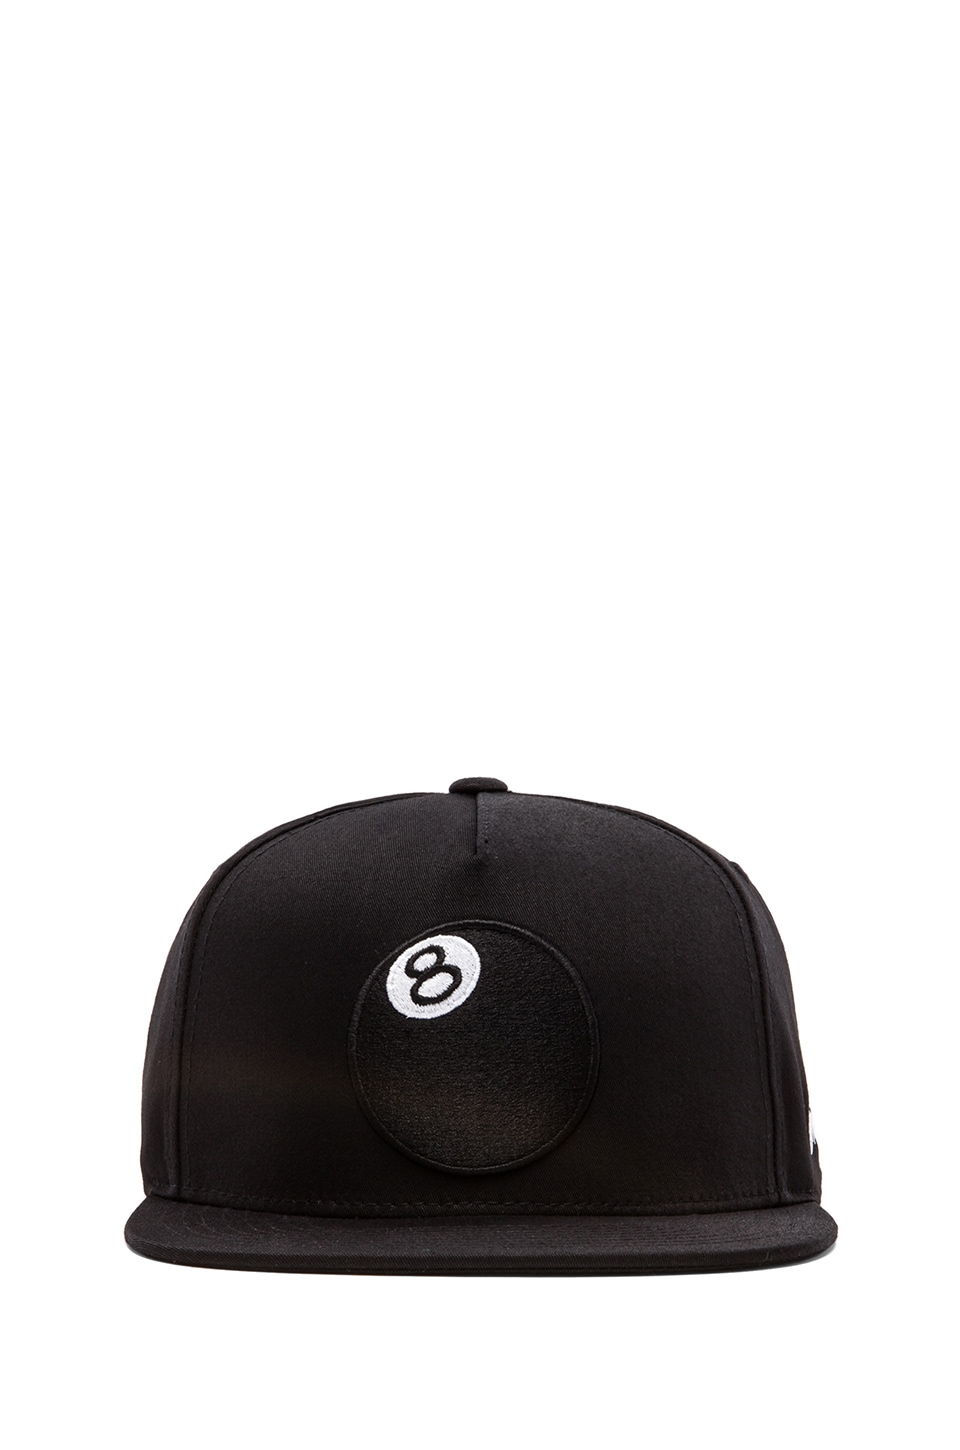 Stussy 8-Ball Snapback in Black